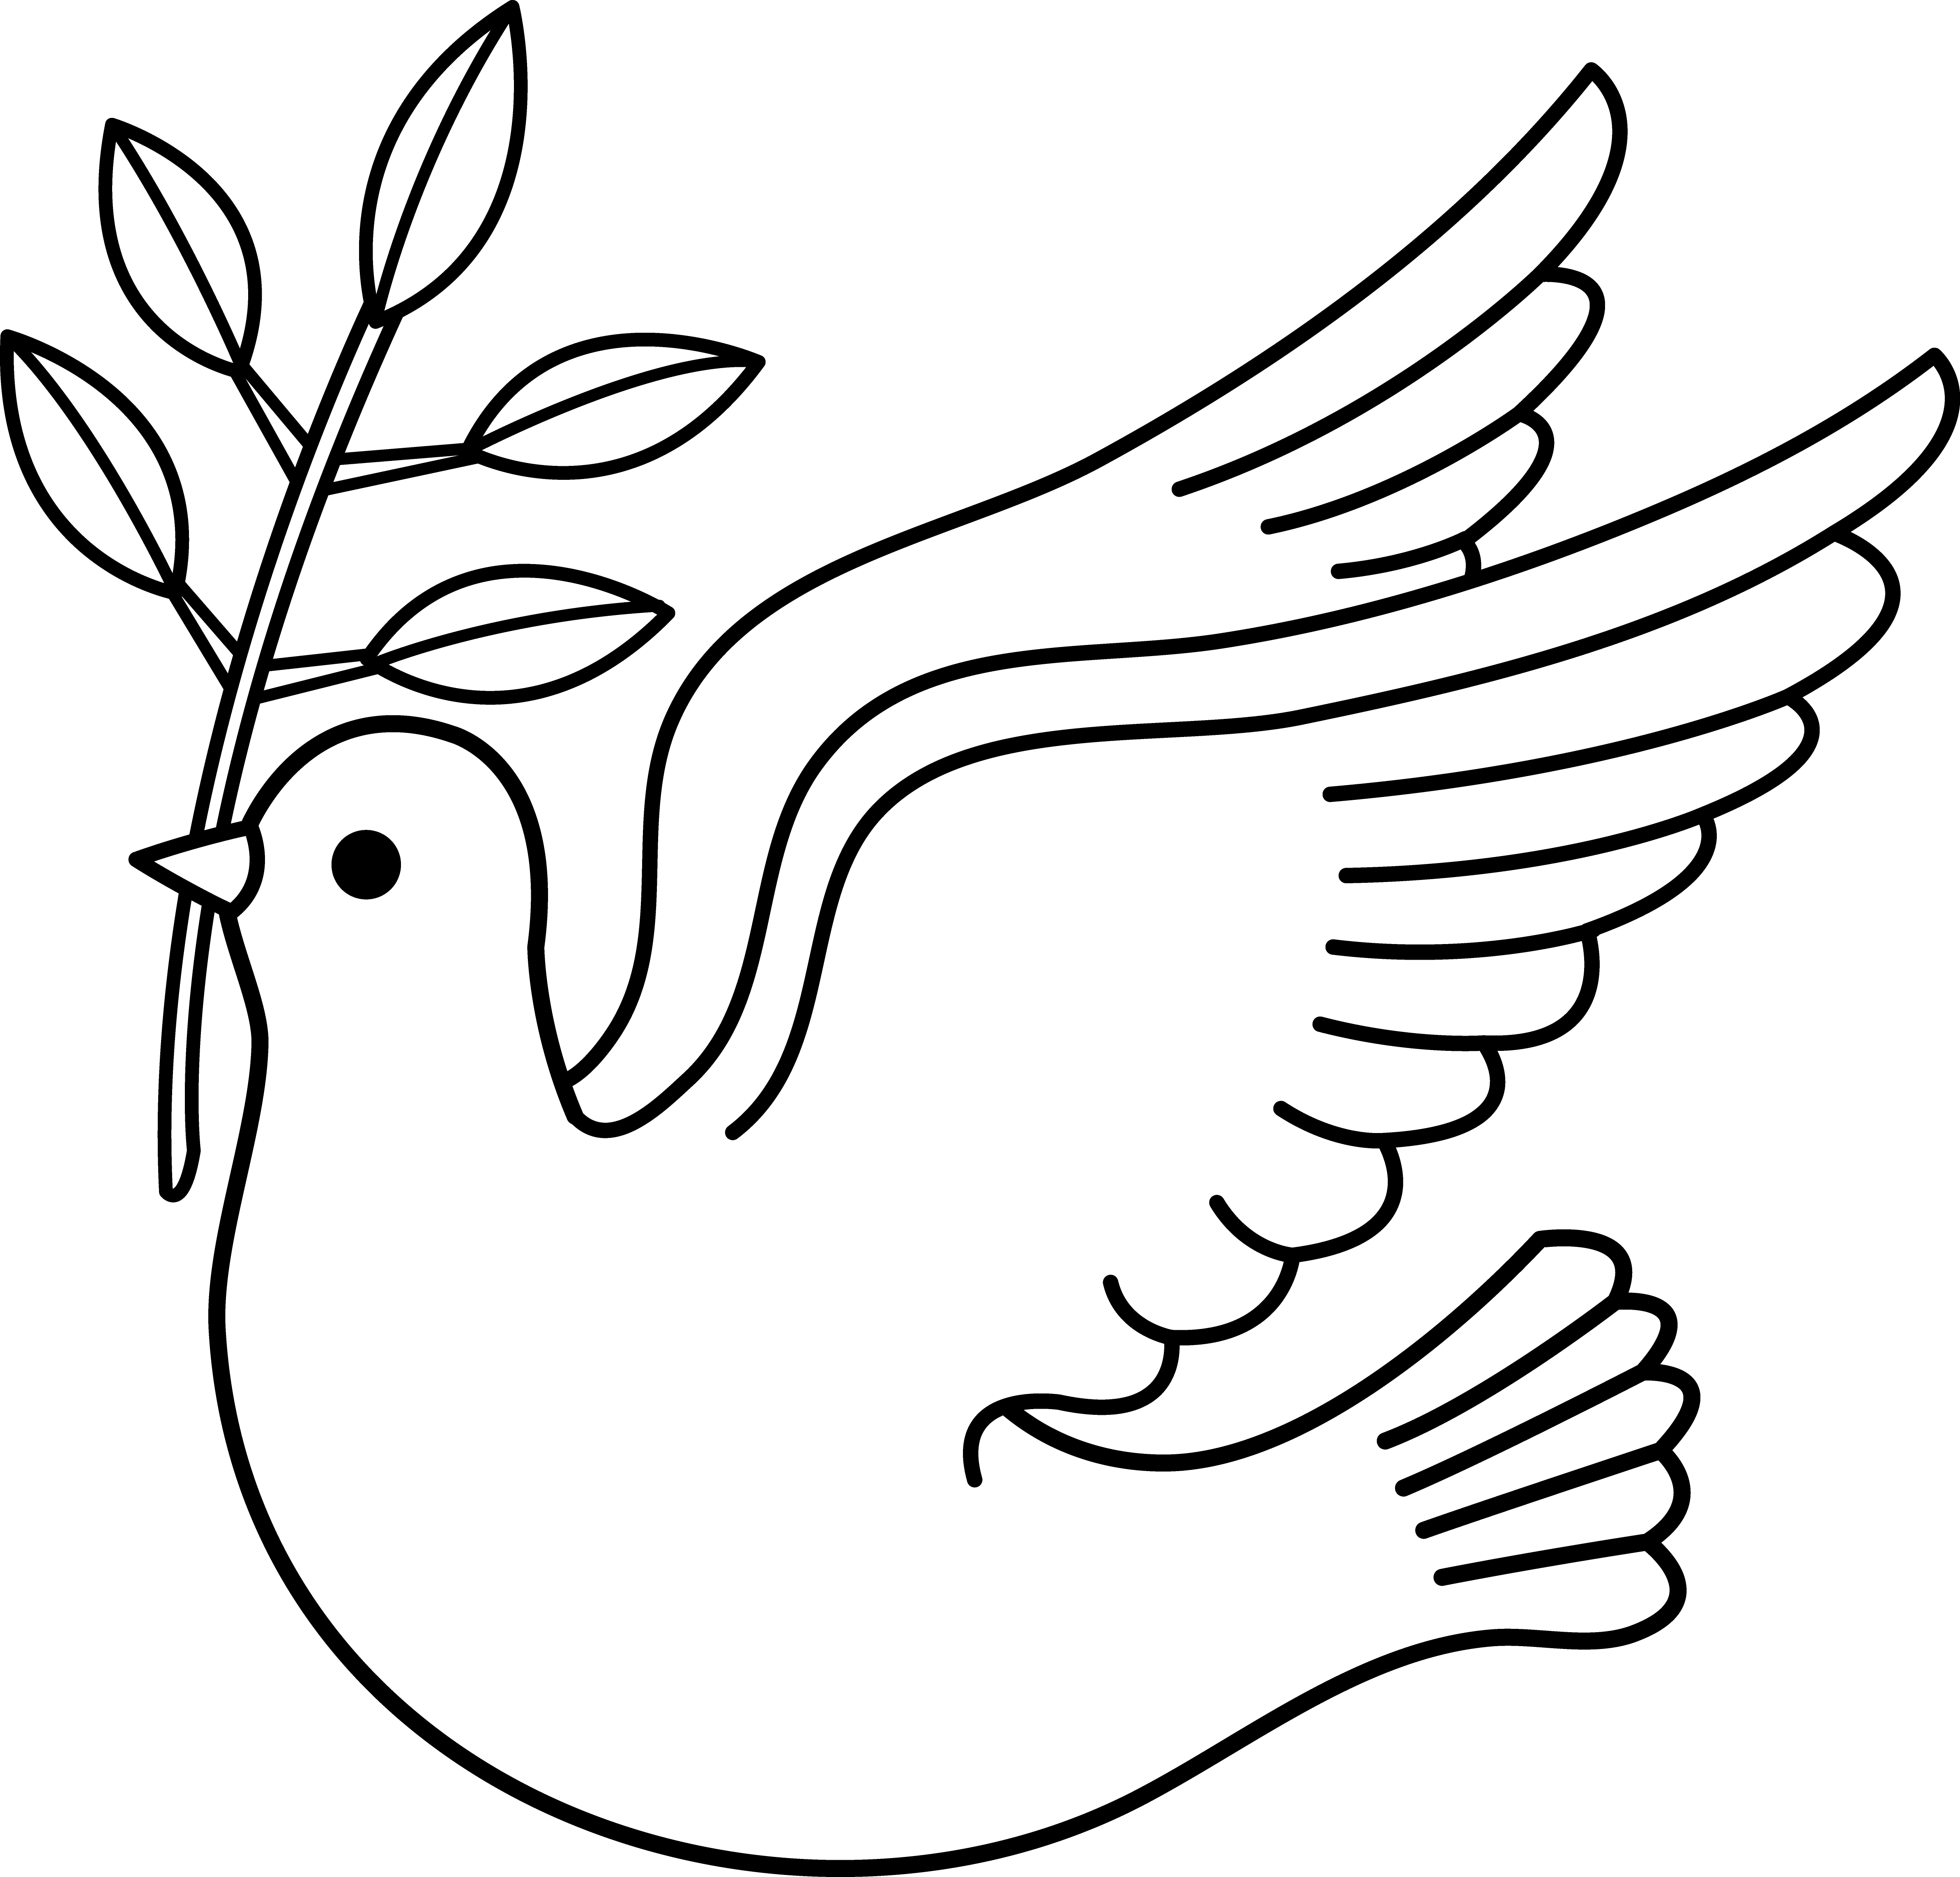 Images For > Flying Dove Outline